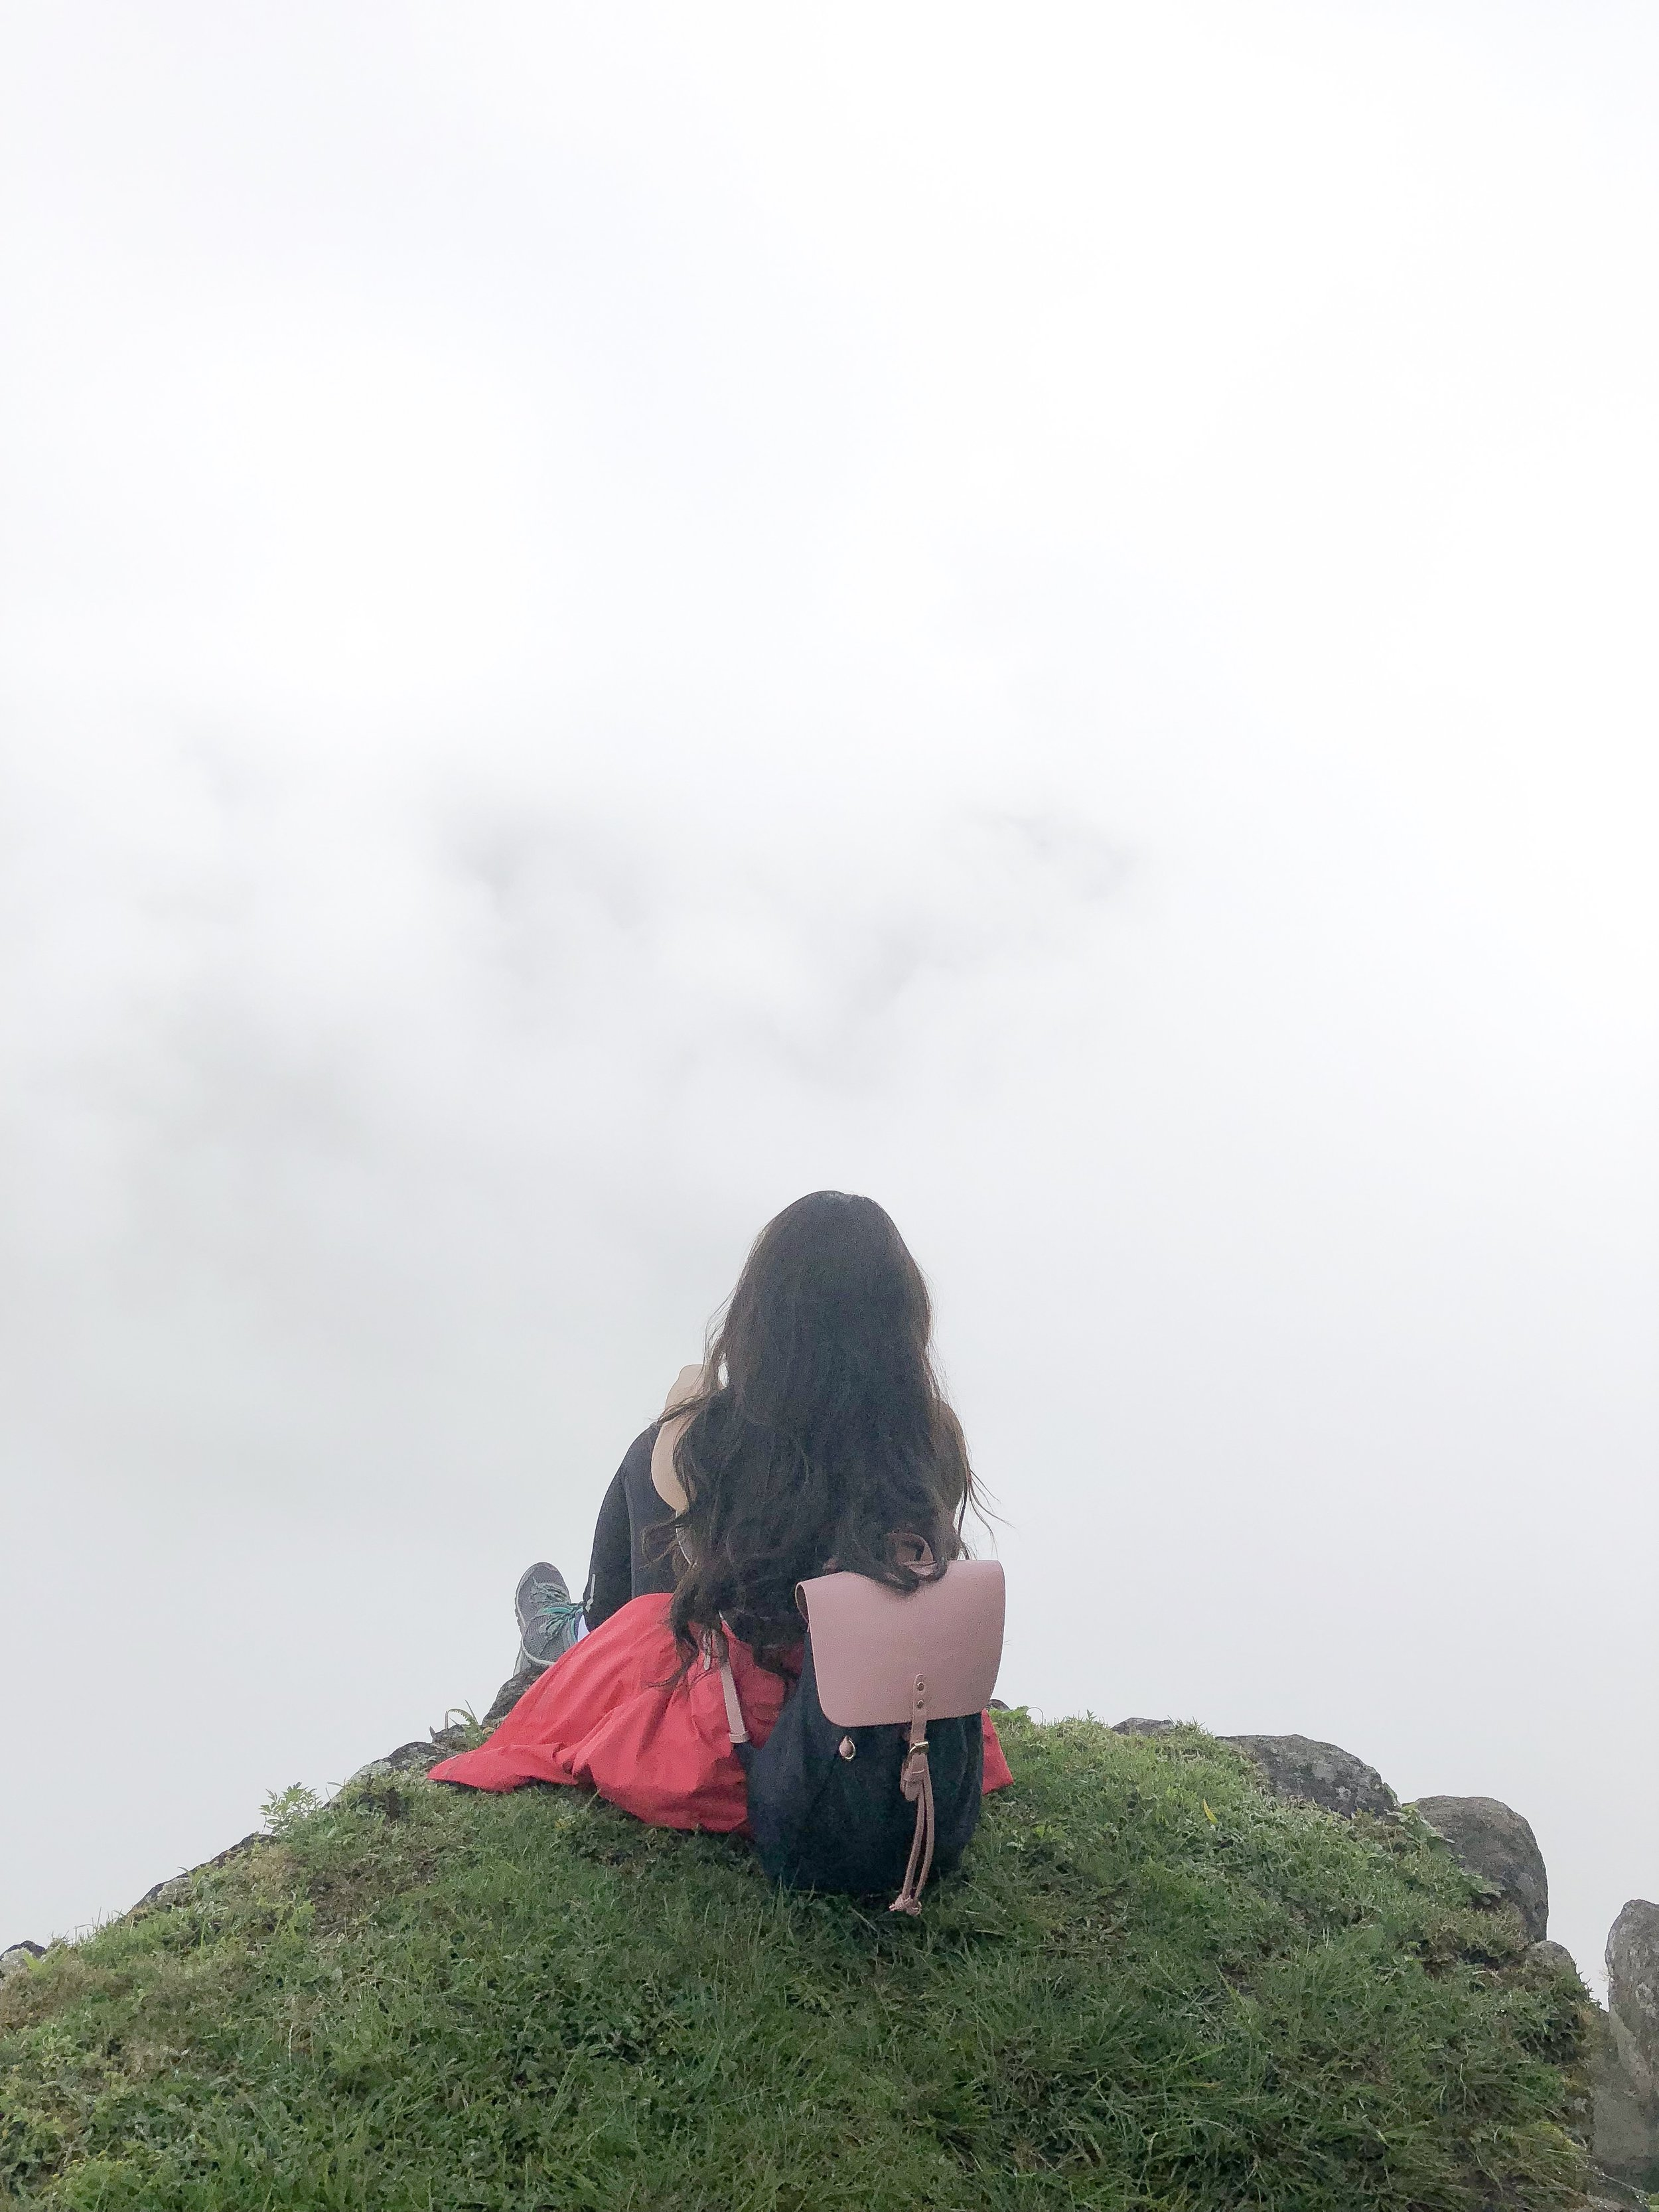 This was around 11 am at the peak of the tallest point in Machu Picchu (Waynapicchu), still super foggy!